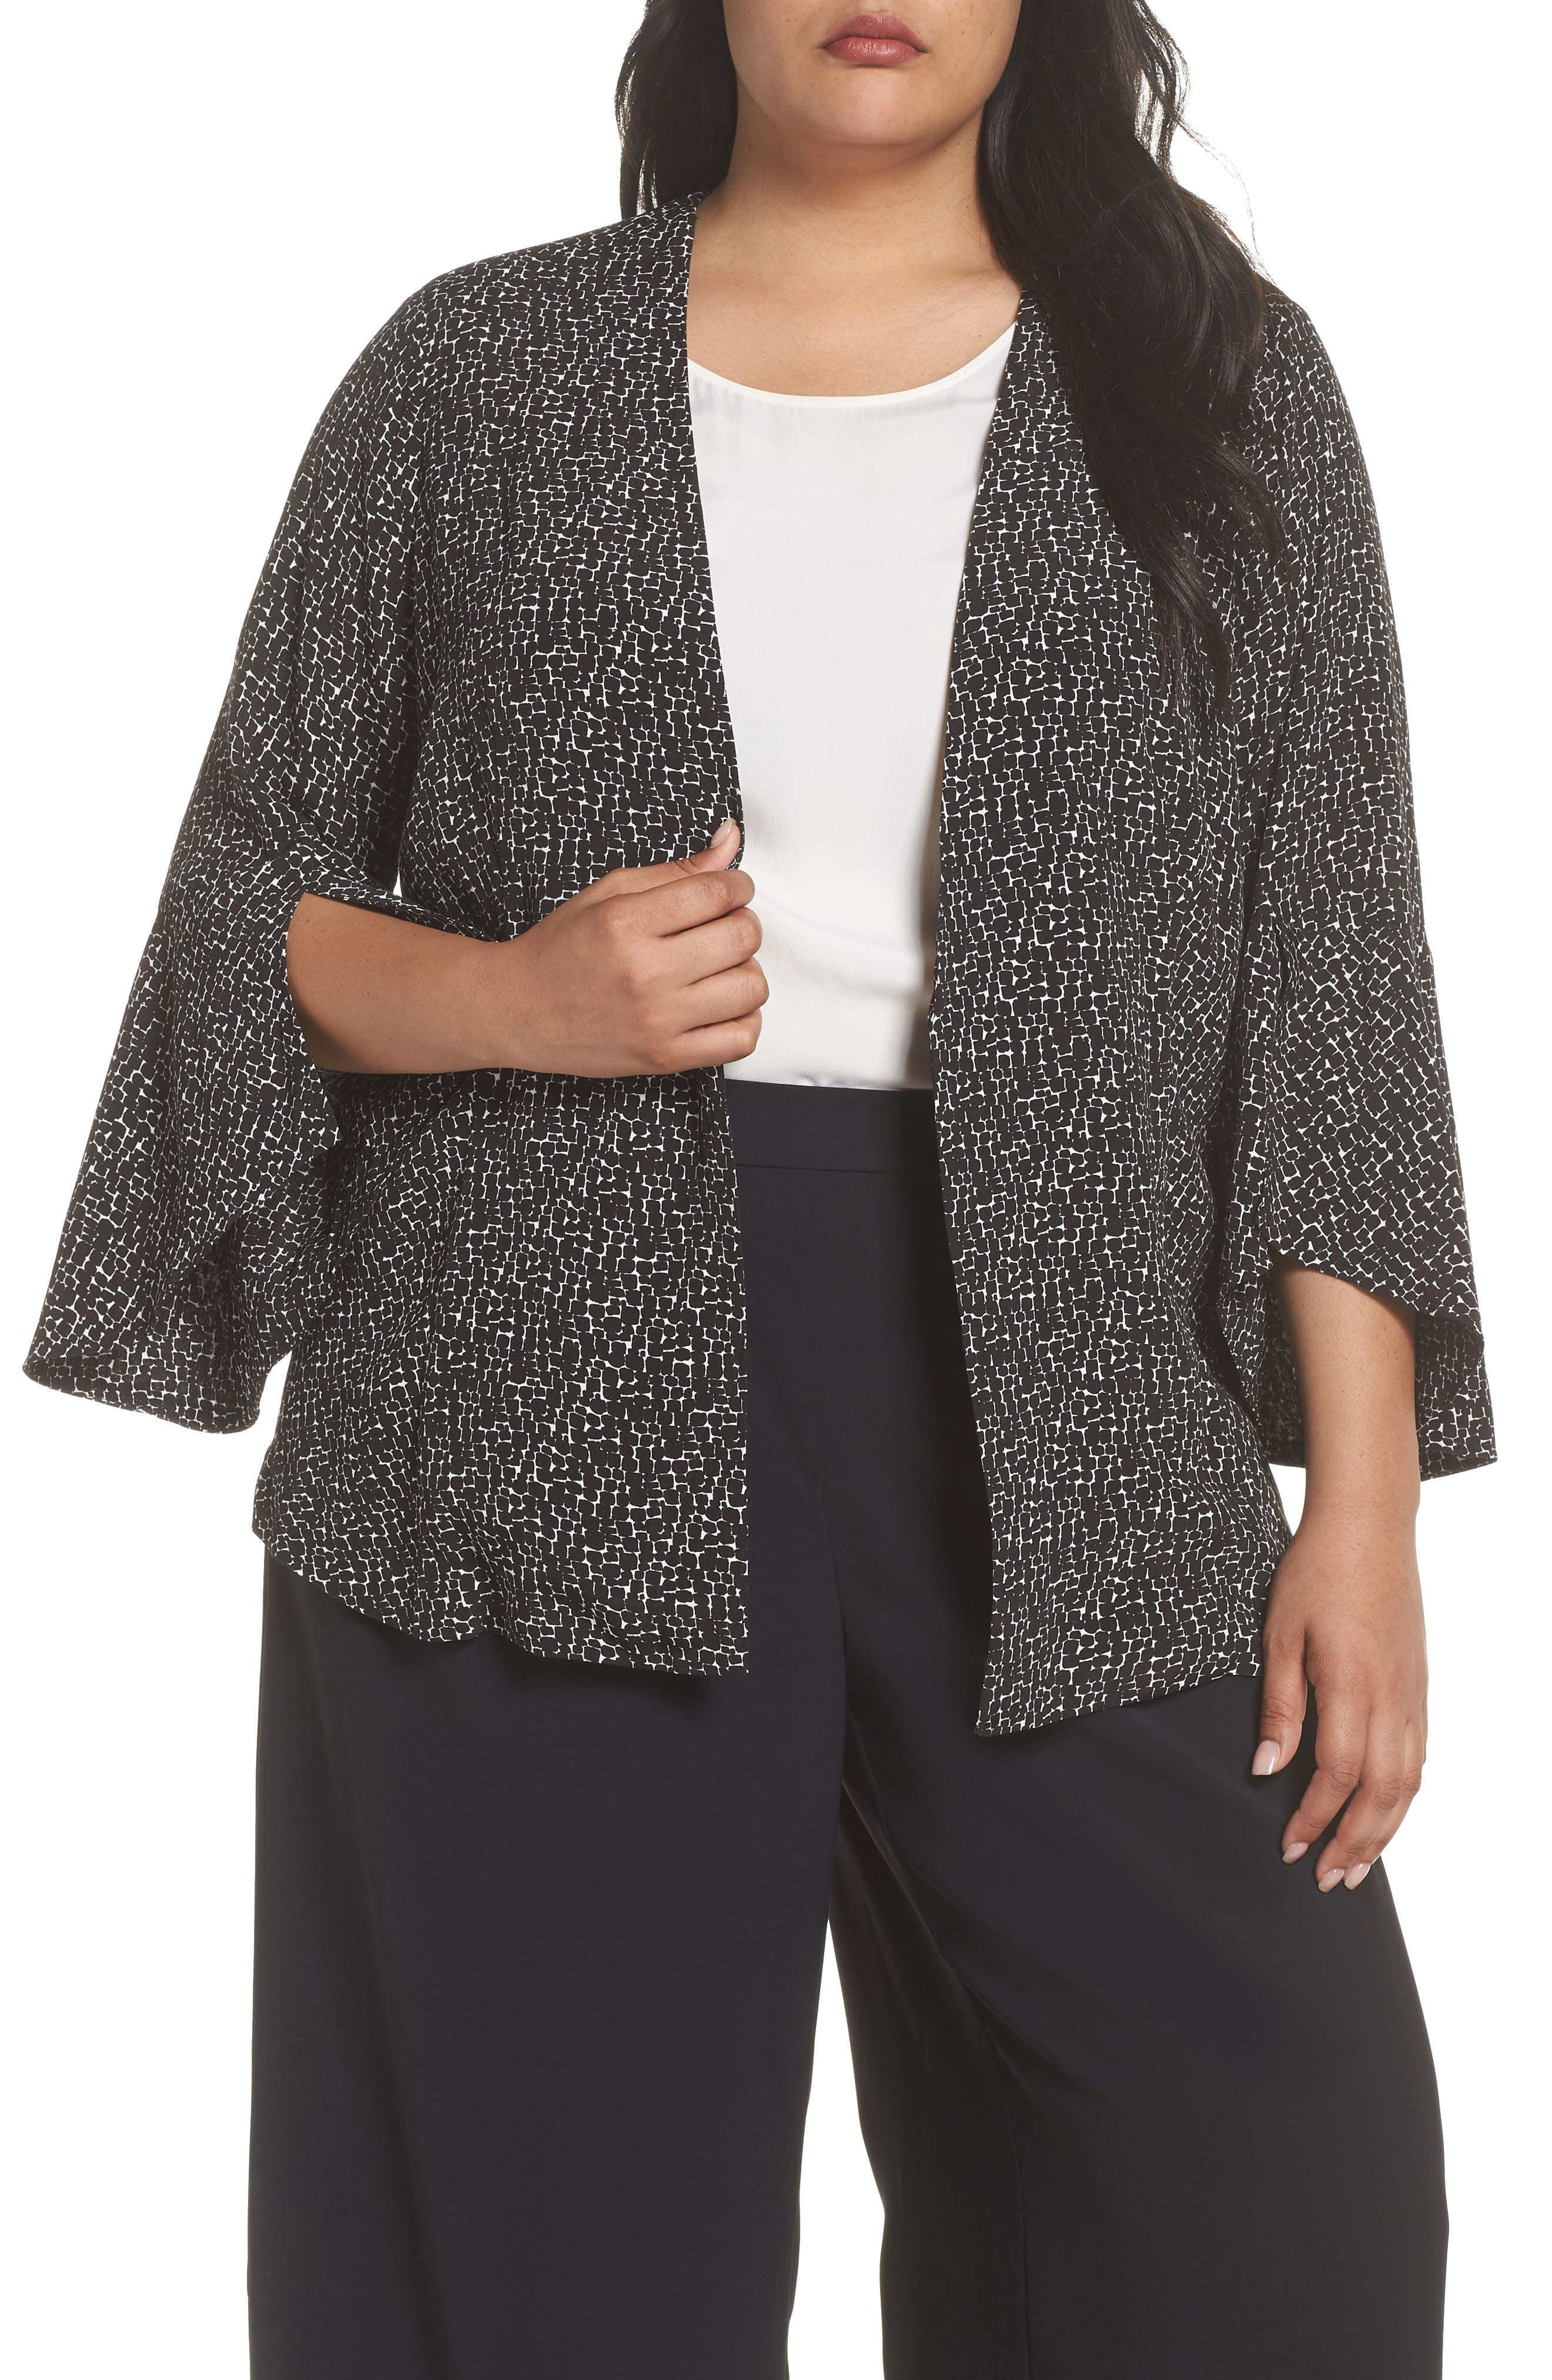 Ruffle Sleeve Soft Crepe Jacket,                         Main,                         color, BLACK-IVORY GIA PRINT